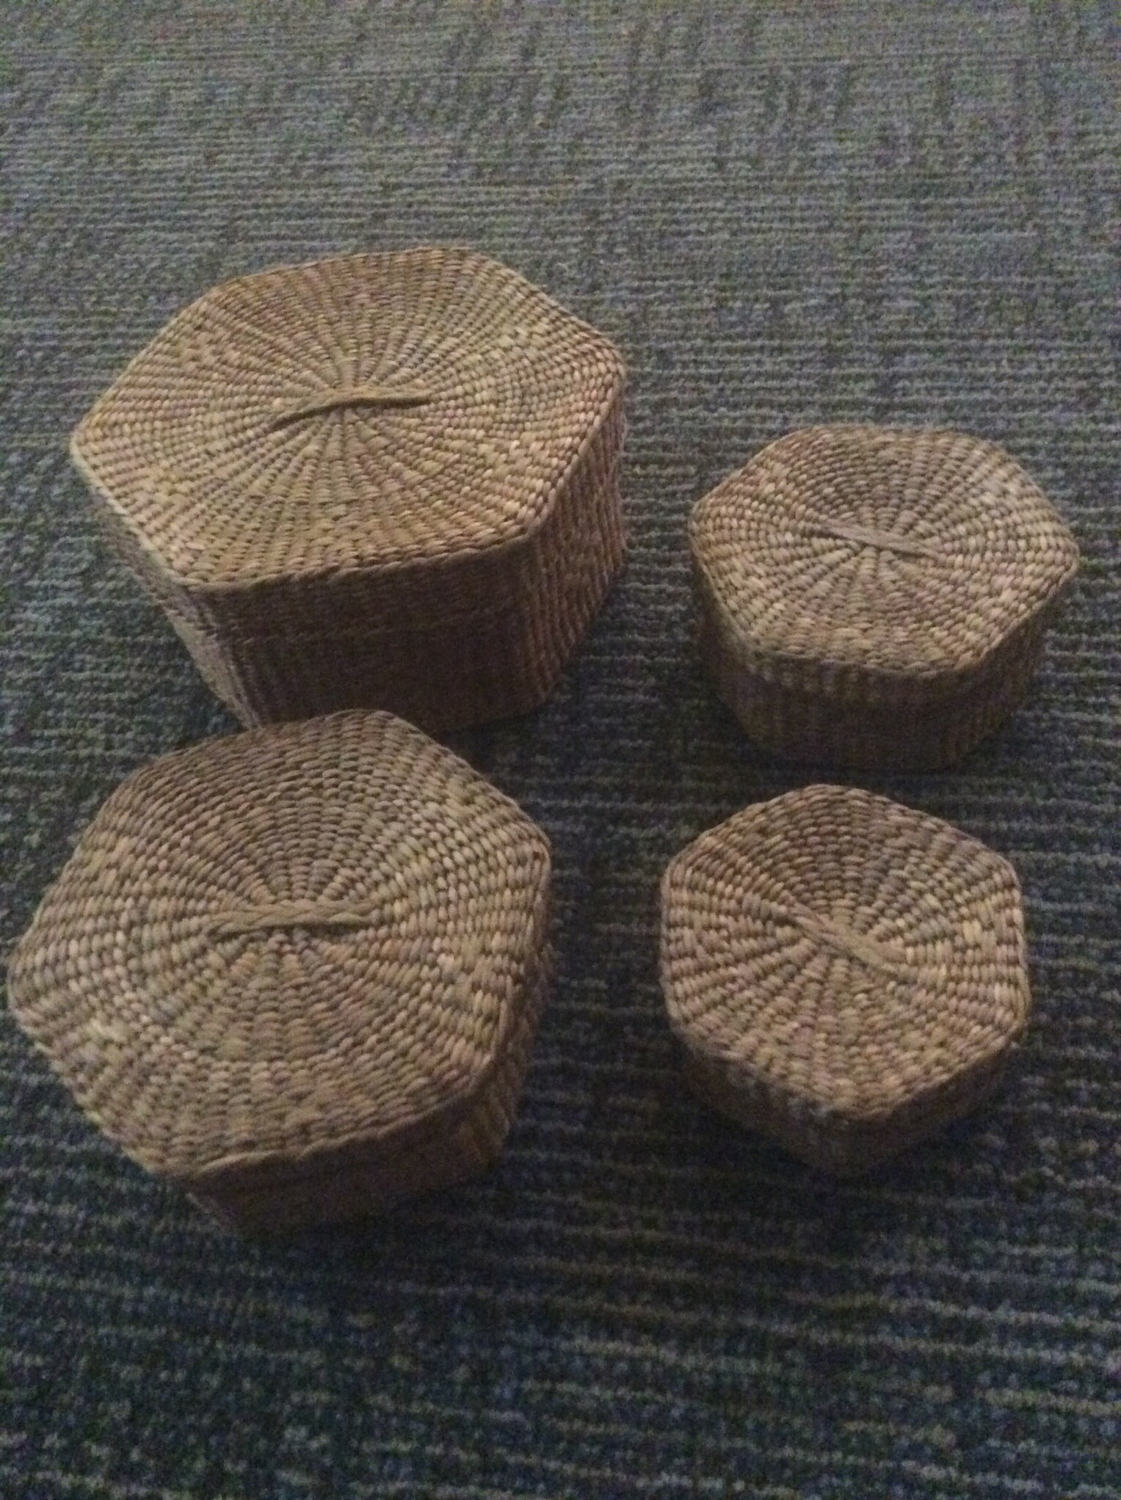 Set of 4 baskets charging vessels energize empower spirit tabernacles and enchanted Talismans